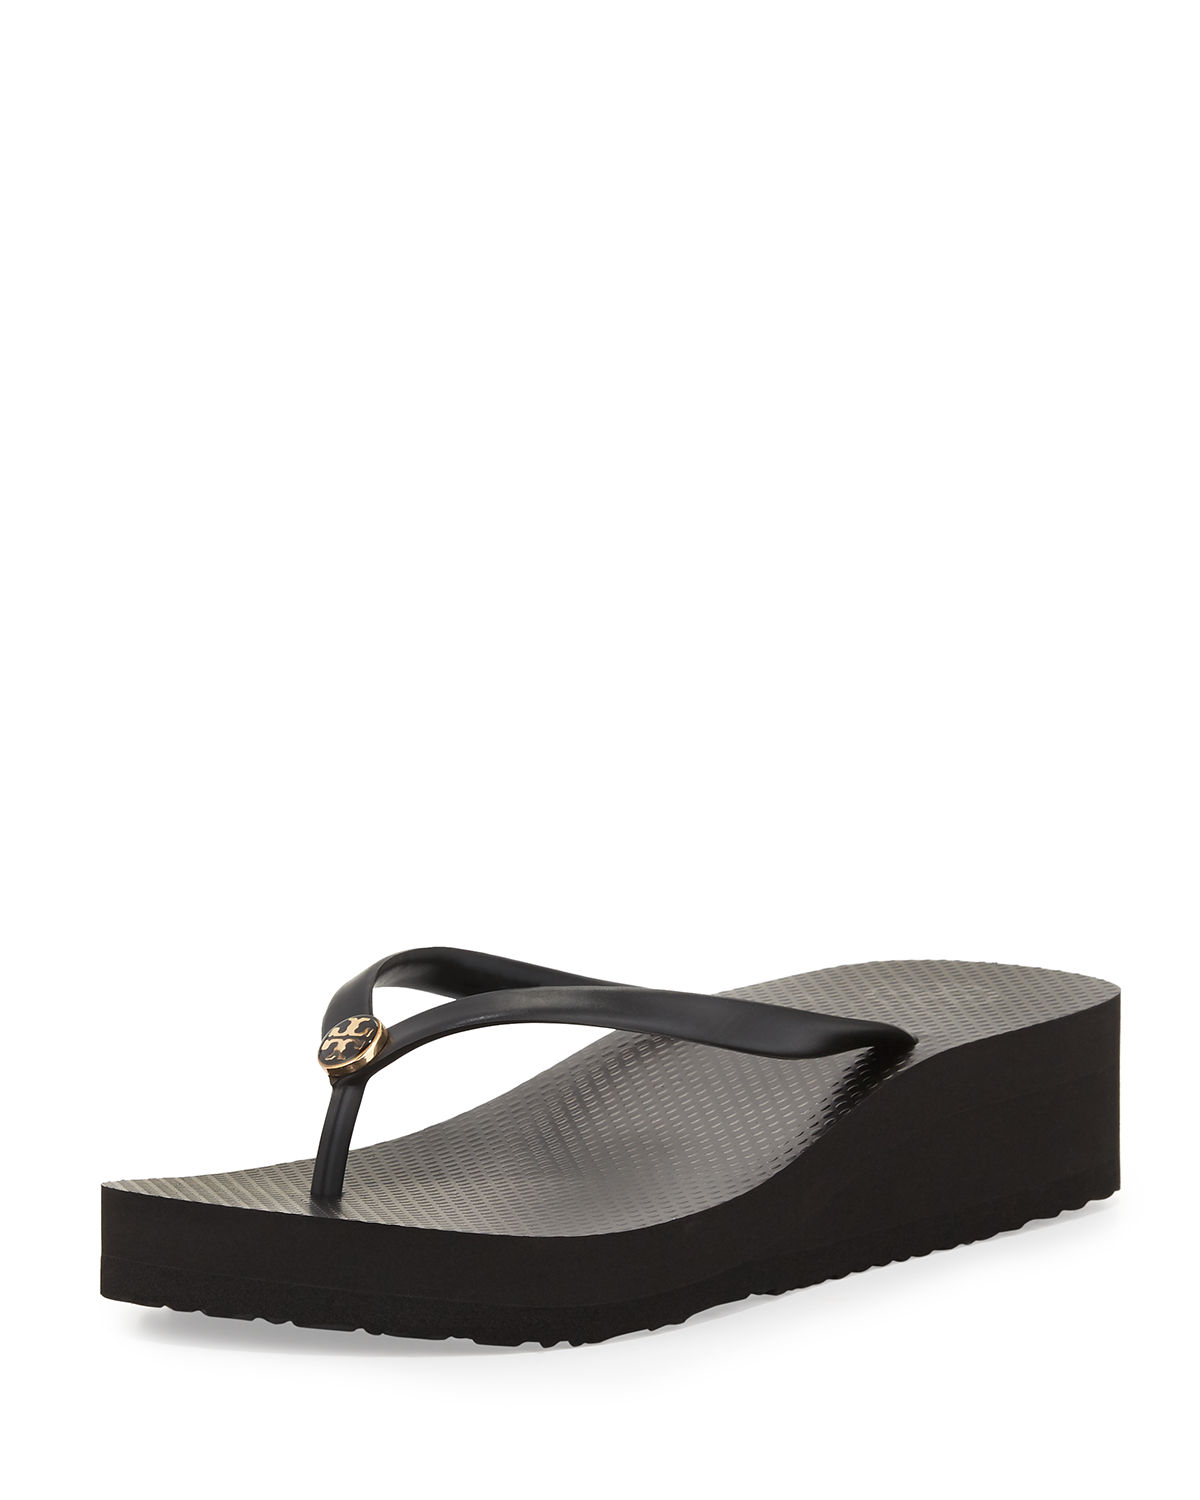 Tory Burch Wedges RUBBER WEDGE FLIP-FLOP